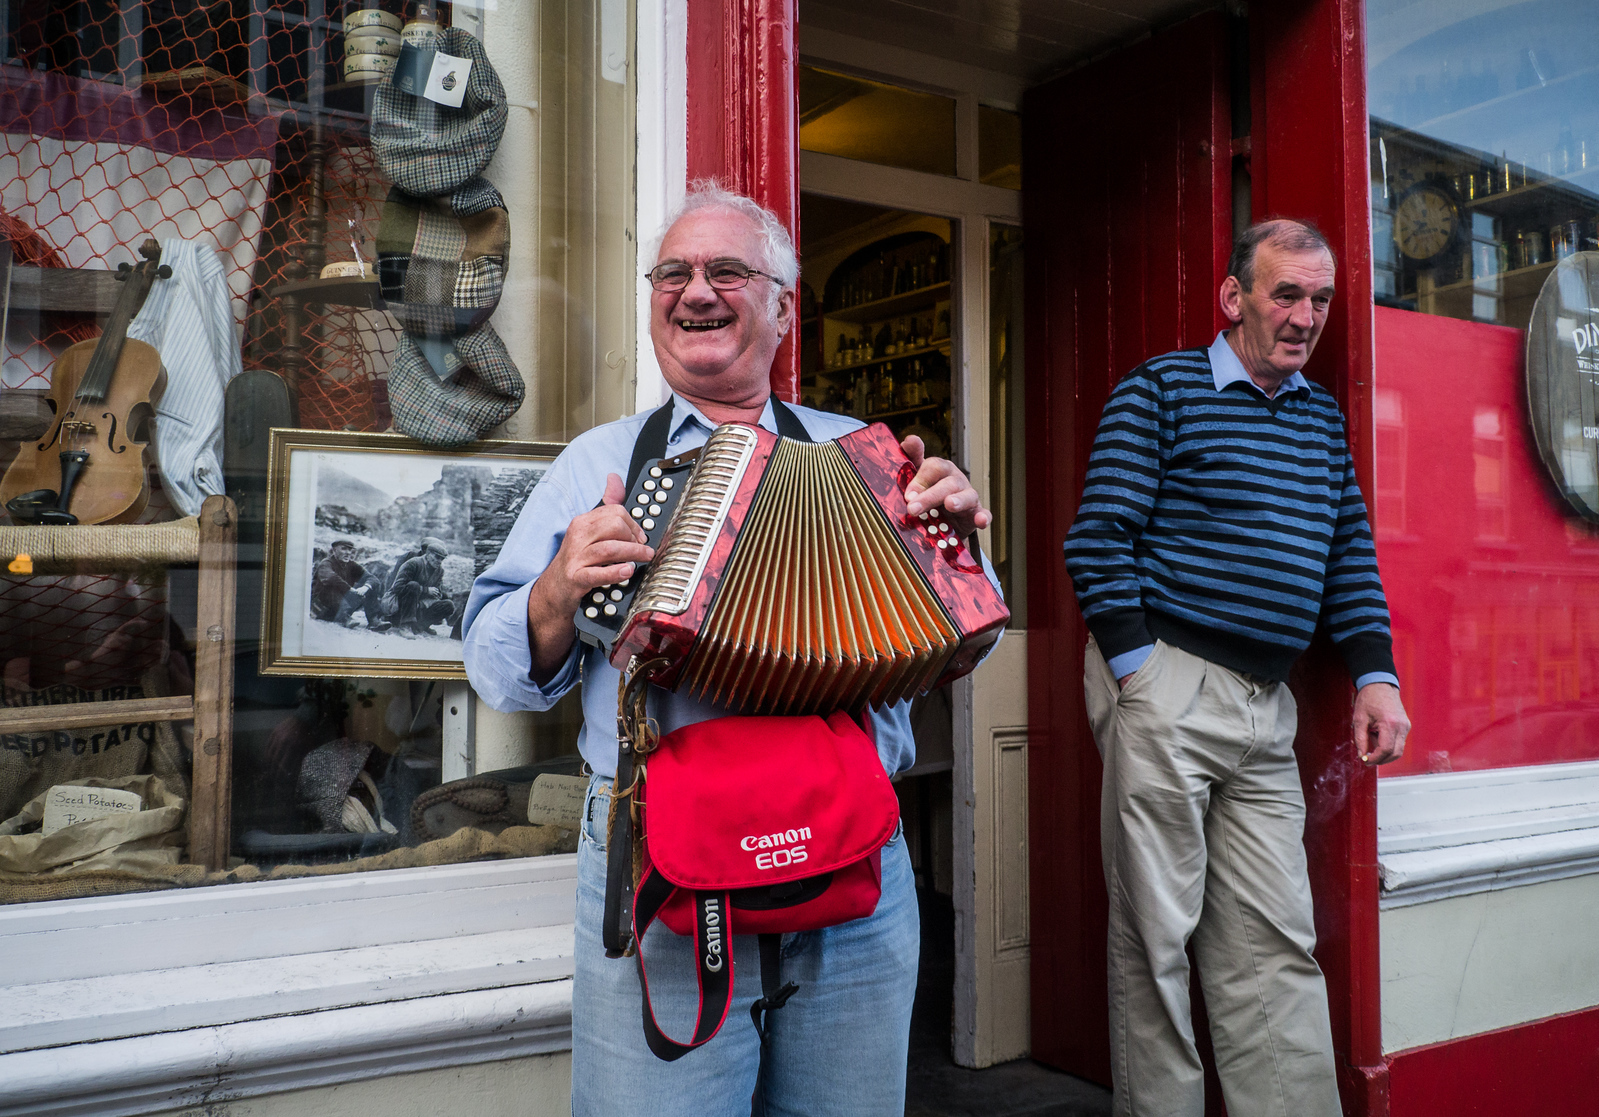 June 21st 2013 An Australian (with a big Canon Eos bag) play the Accordion outside a Dingle pub with a local looking a bit bemused ..